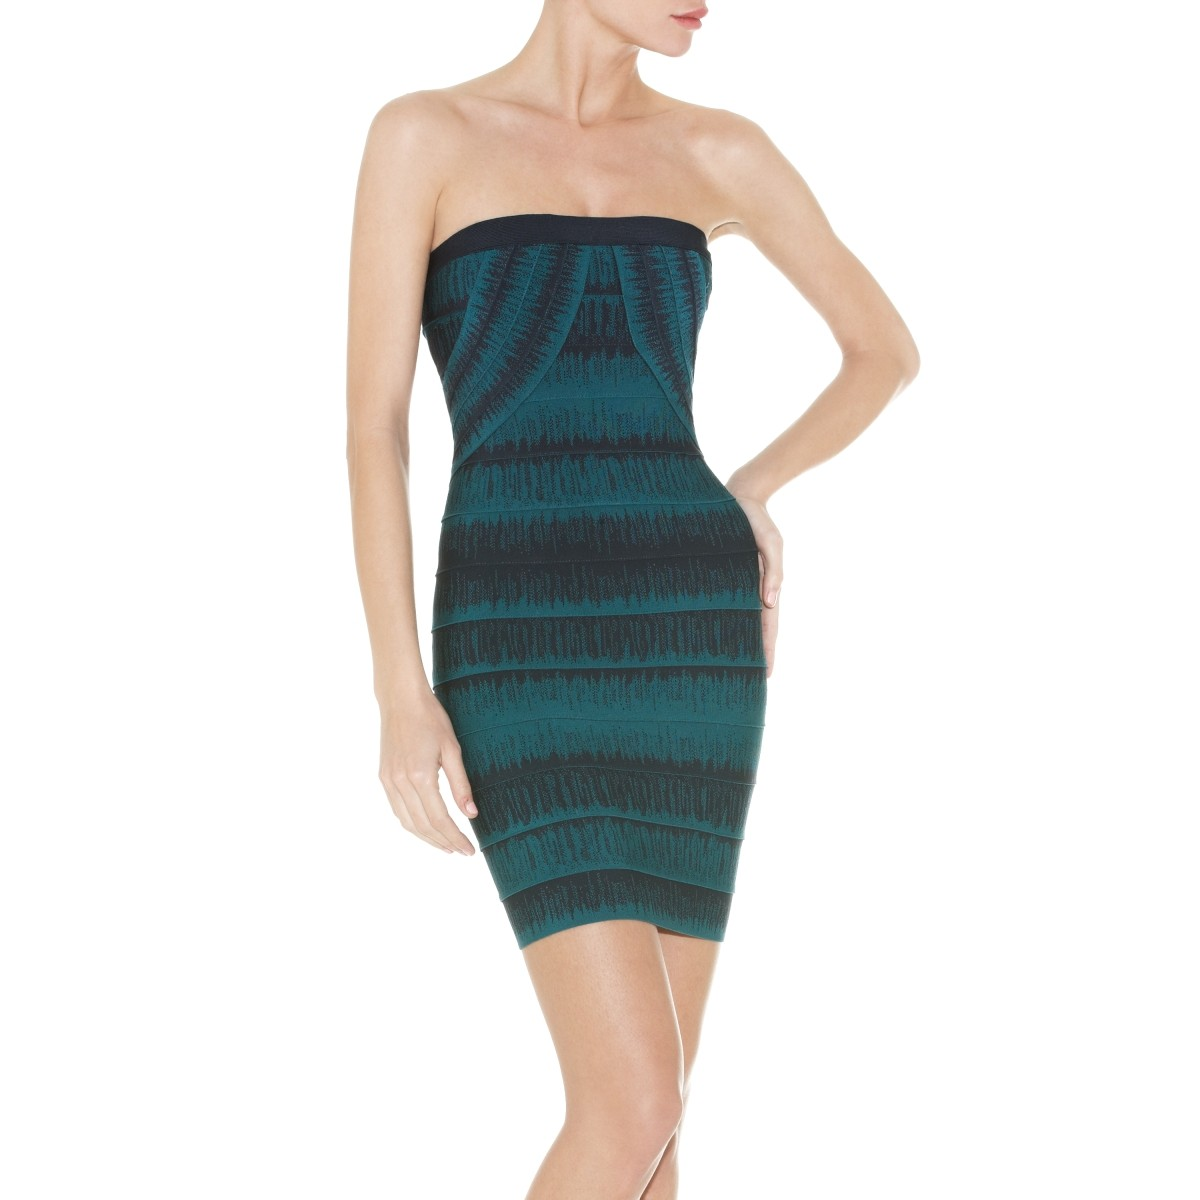 Herve Leger Lesley Faded-Stitch Strapless Bandage Dress